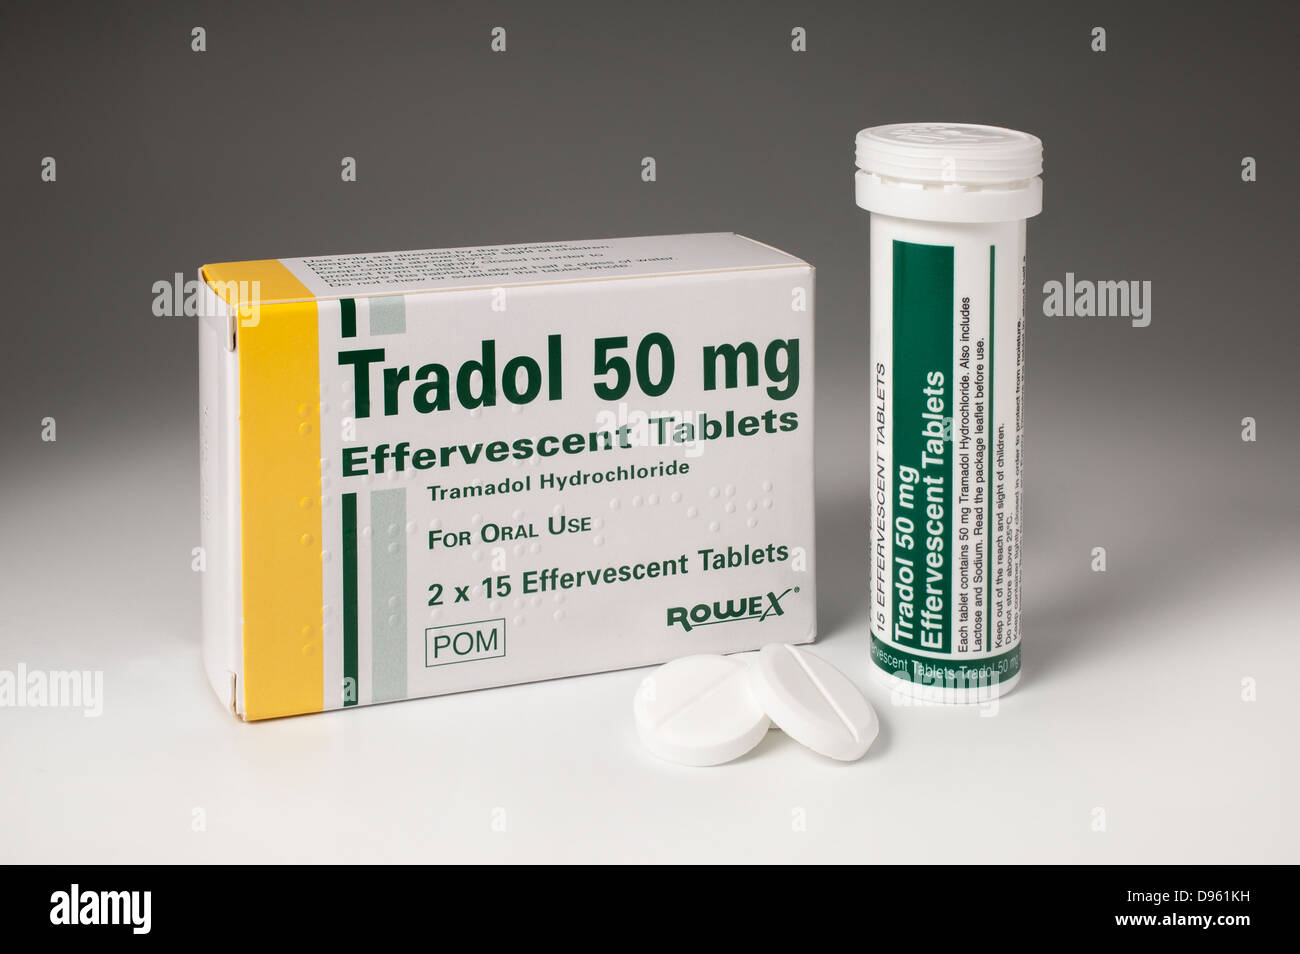 is tramadol safe for kids